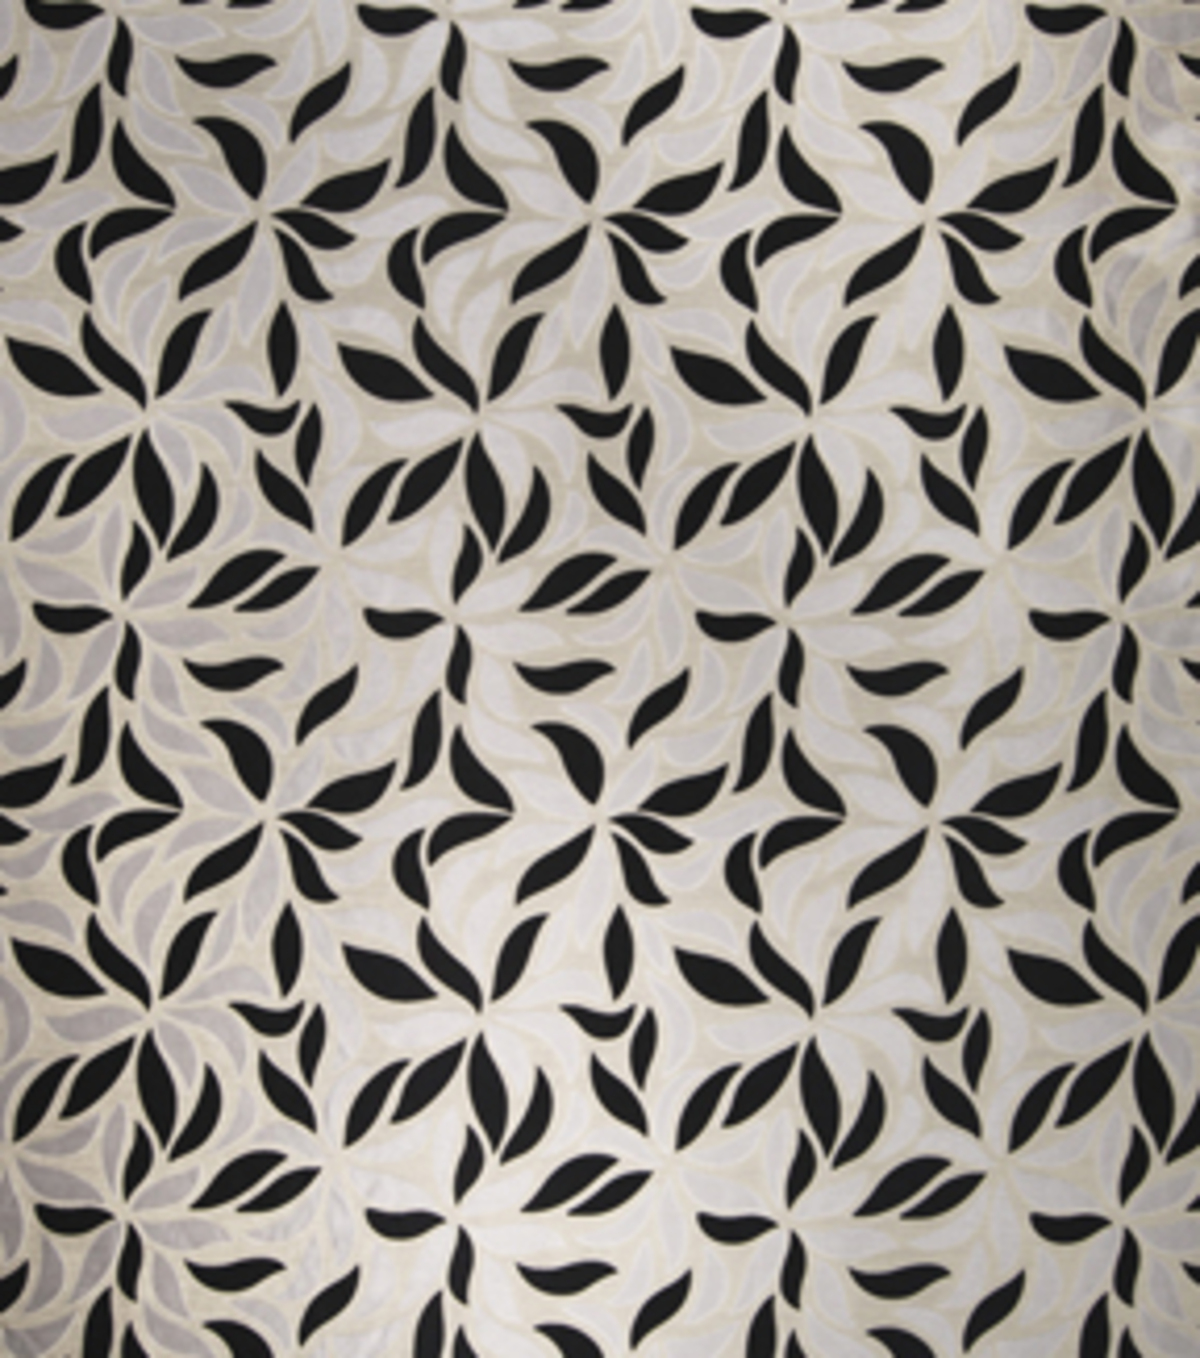 Home Decor 8\u0022x8\u0022 Fabric Swatch-Print Fabric Eaton Square Lewisville Silver